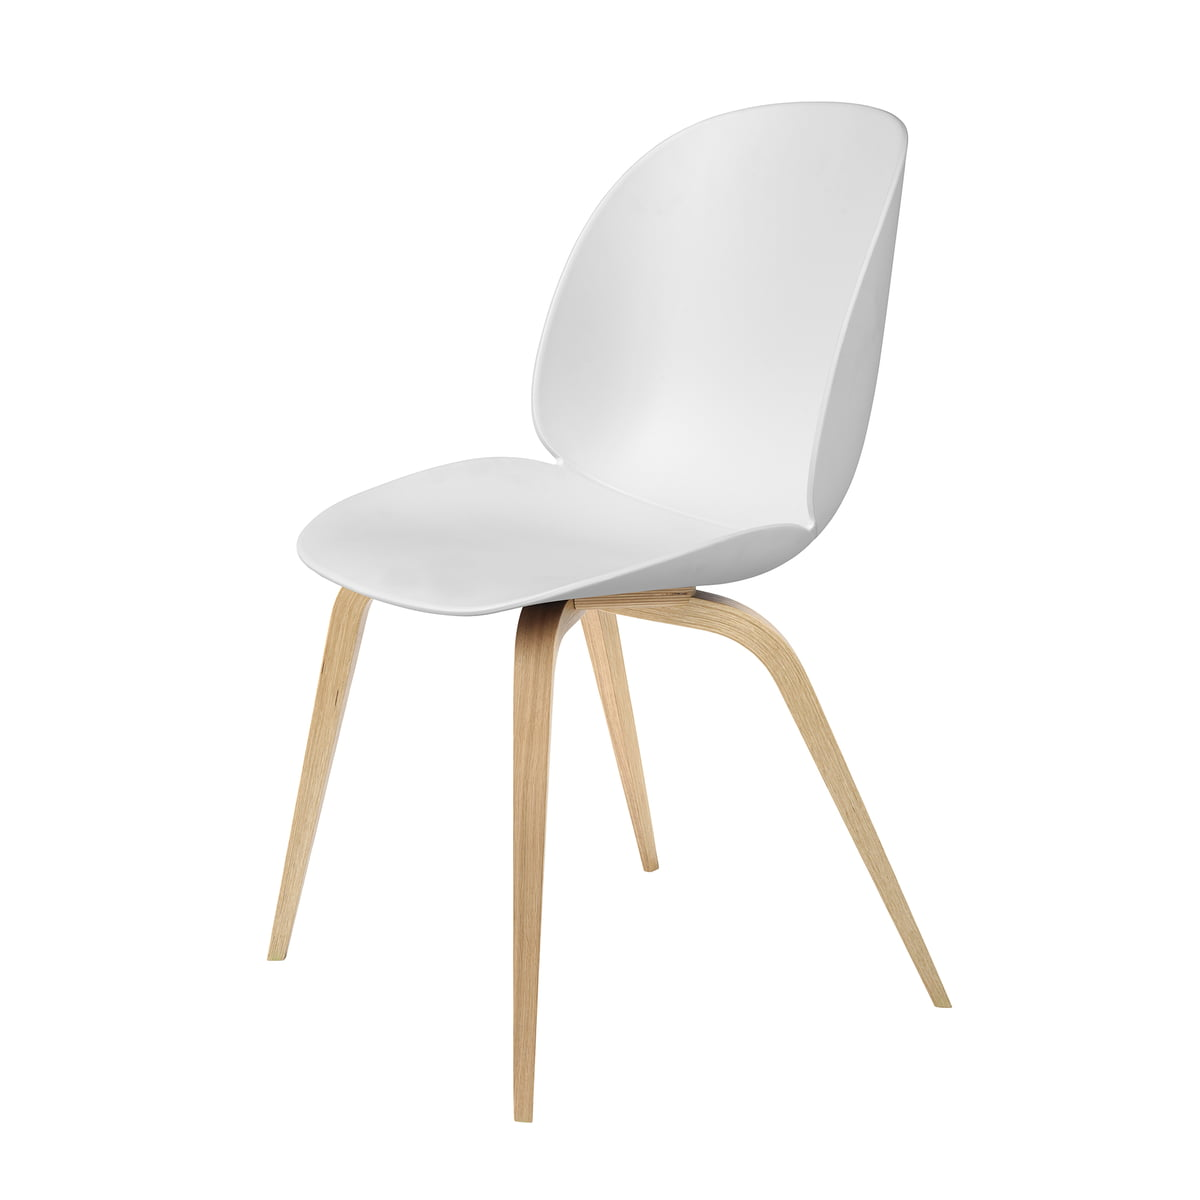 Genial Beetle Dining Chair With Wood Base In Oak / White